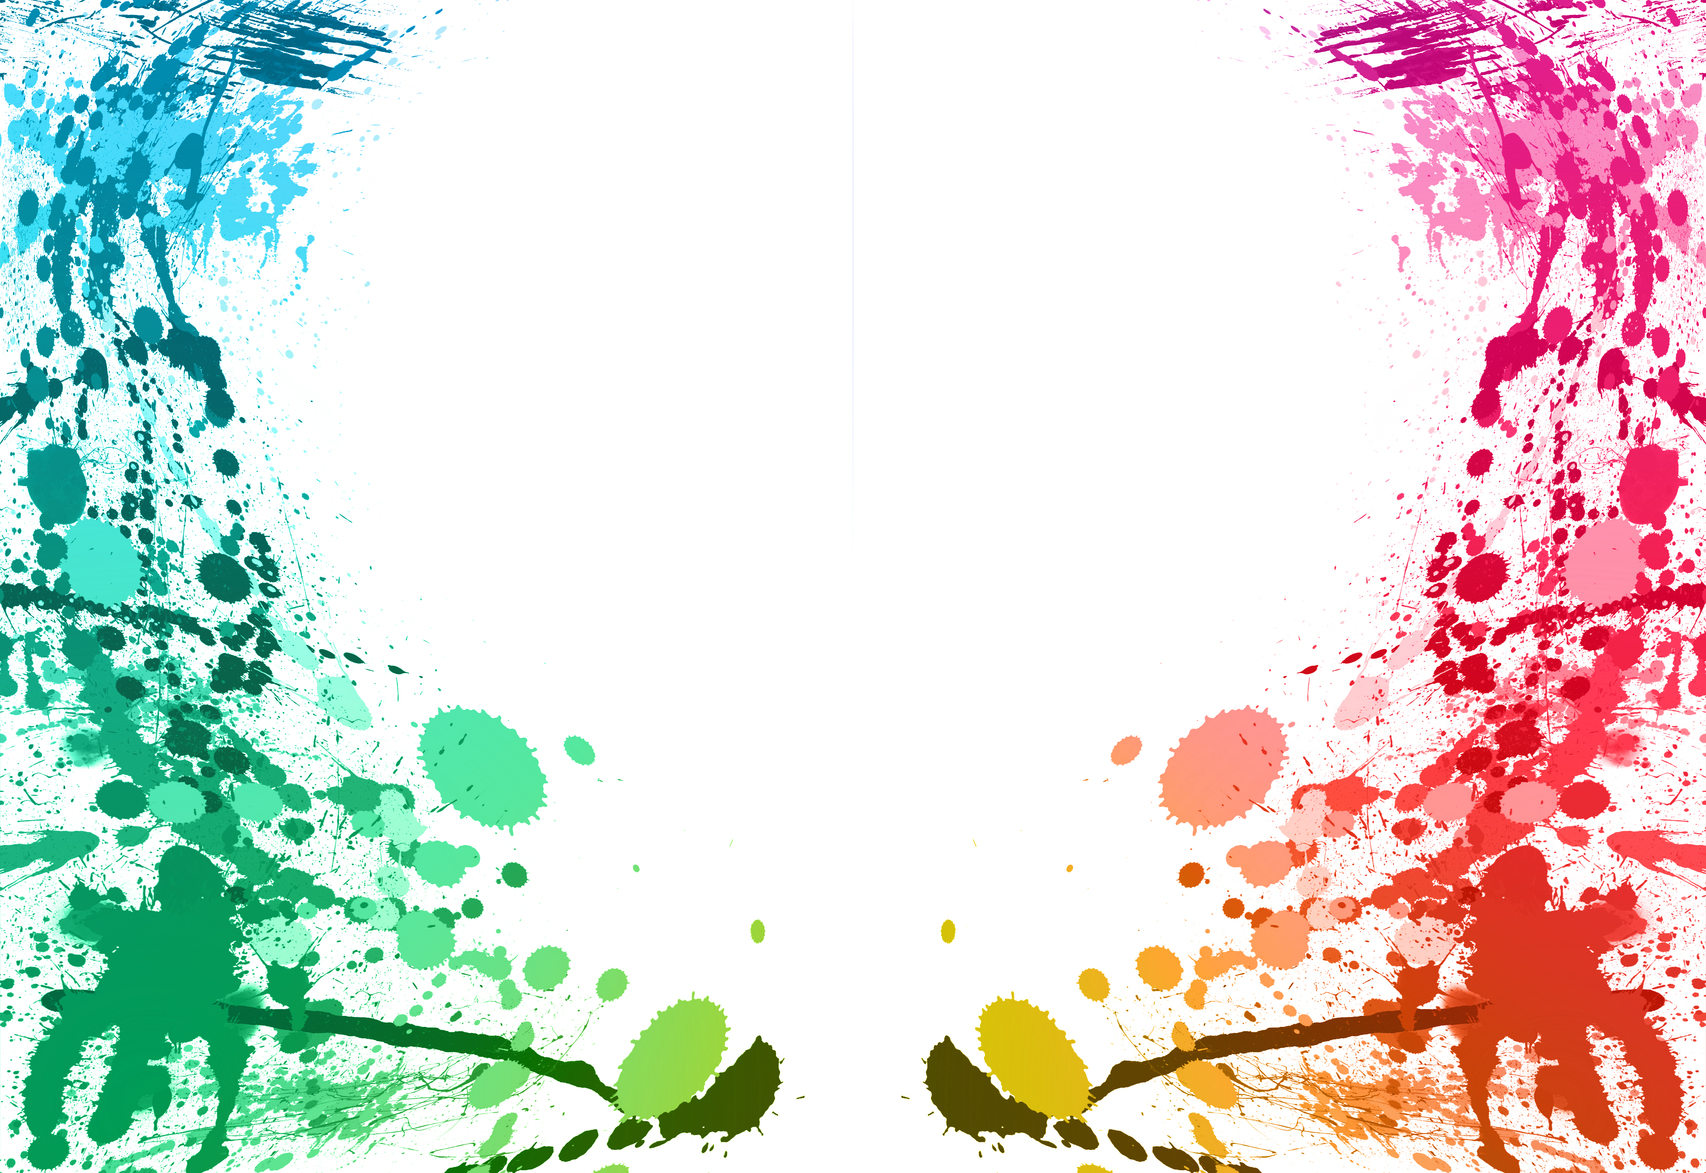 Splattered-Paint-Background.jpg - www.beingmelody.com